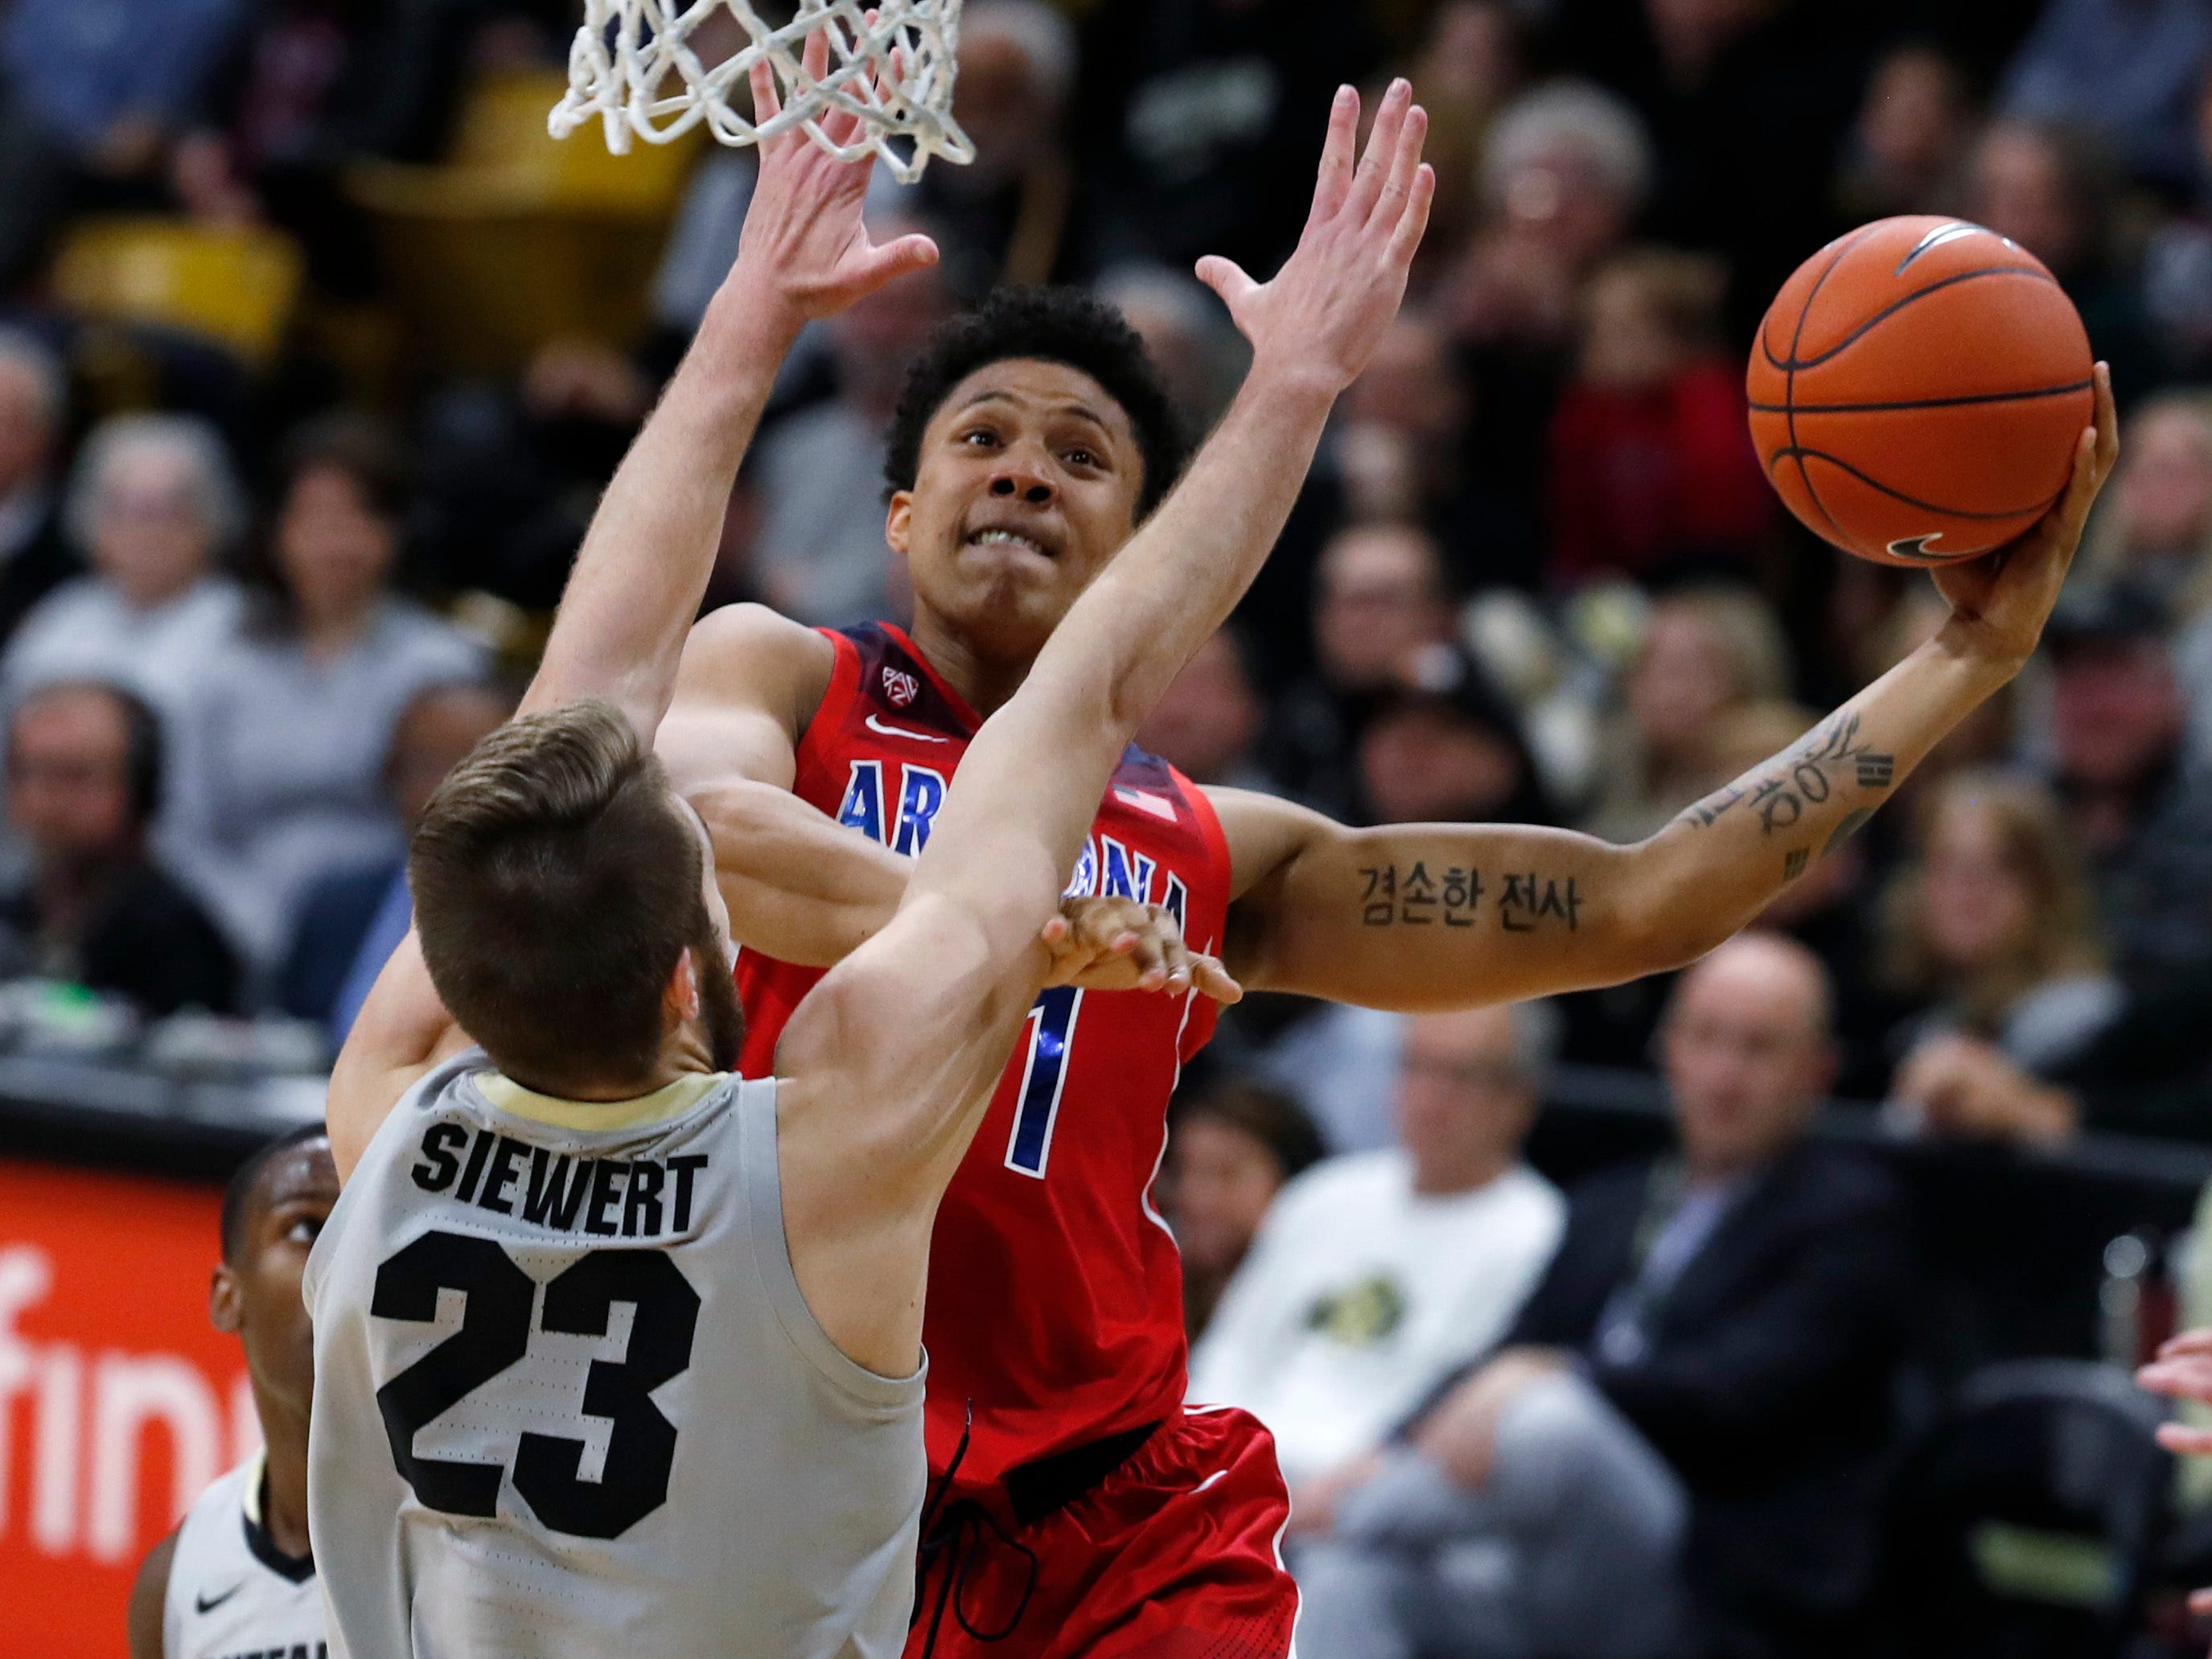 Arizona forward Ira Lee, back drives to the net for a basket as Colorado forward Lucas Siewert defends in the first half of an NCAA college basketball game Sunday, Feb. 17, 2019, in Boulder, Colo.